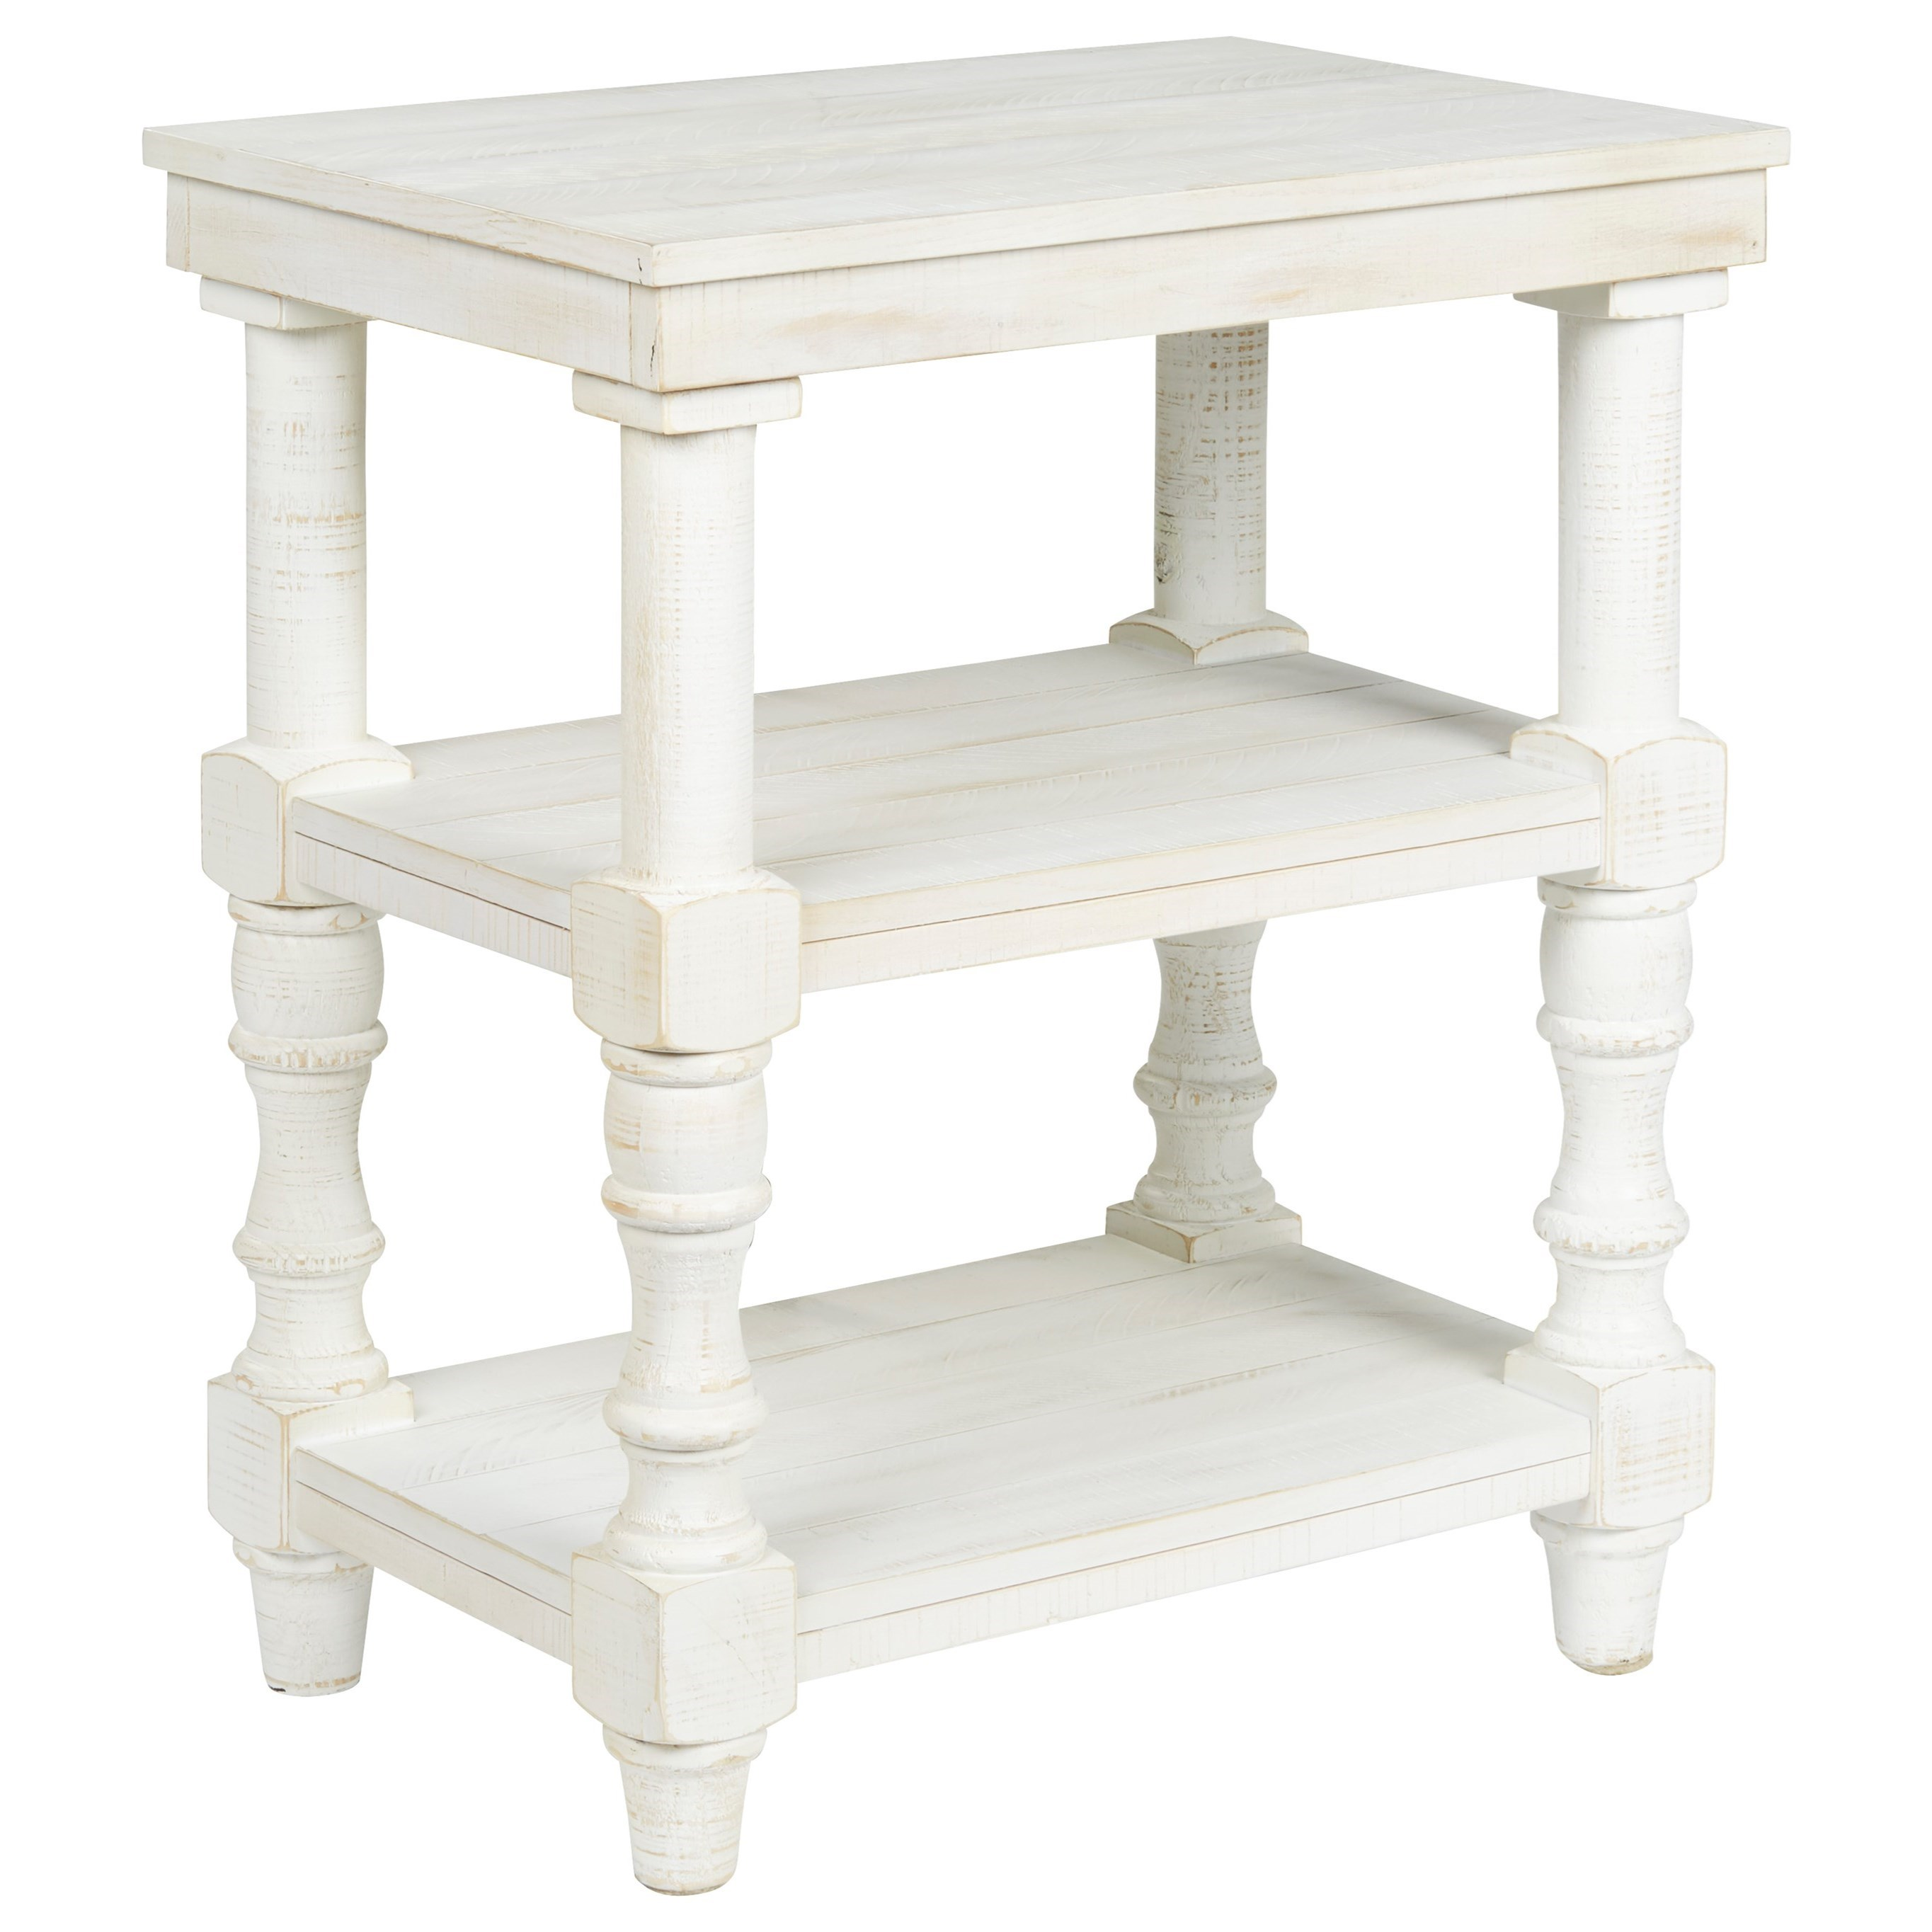 Dannerville Accent Table by Ashley (Signature Design) at Johnny Janosik